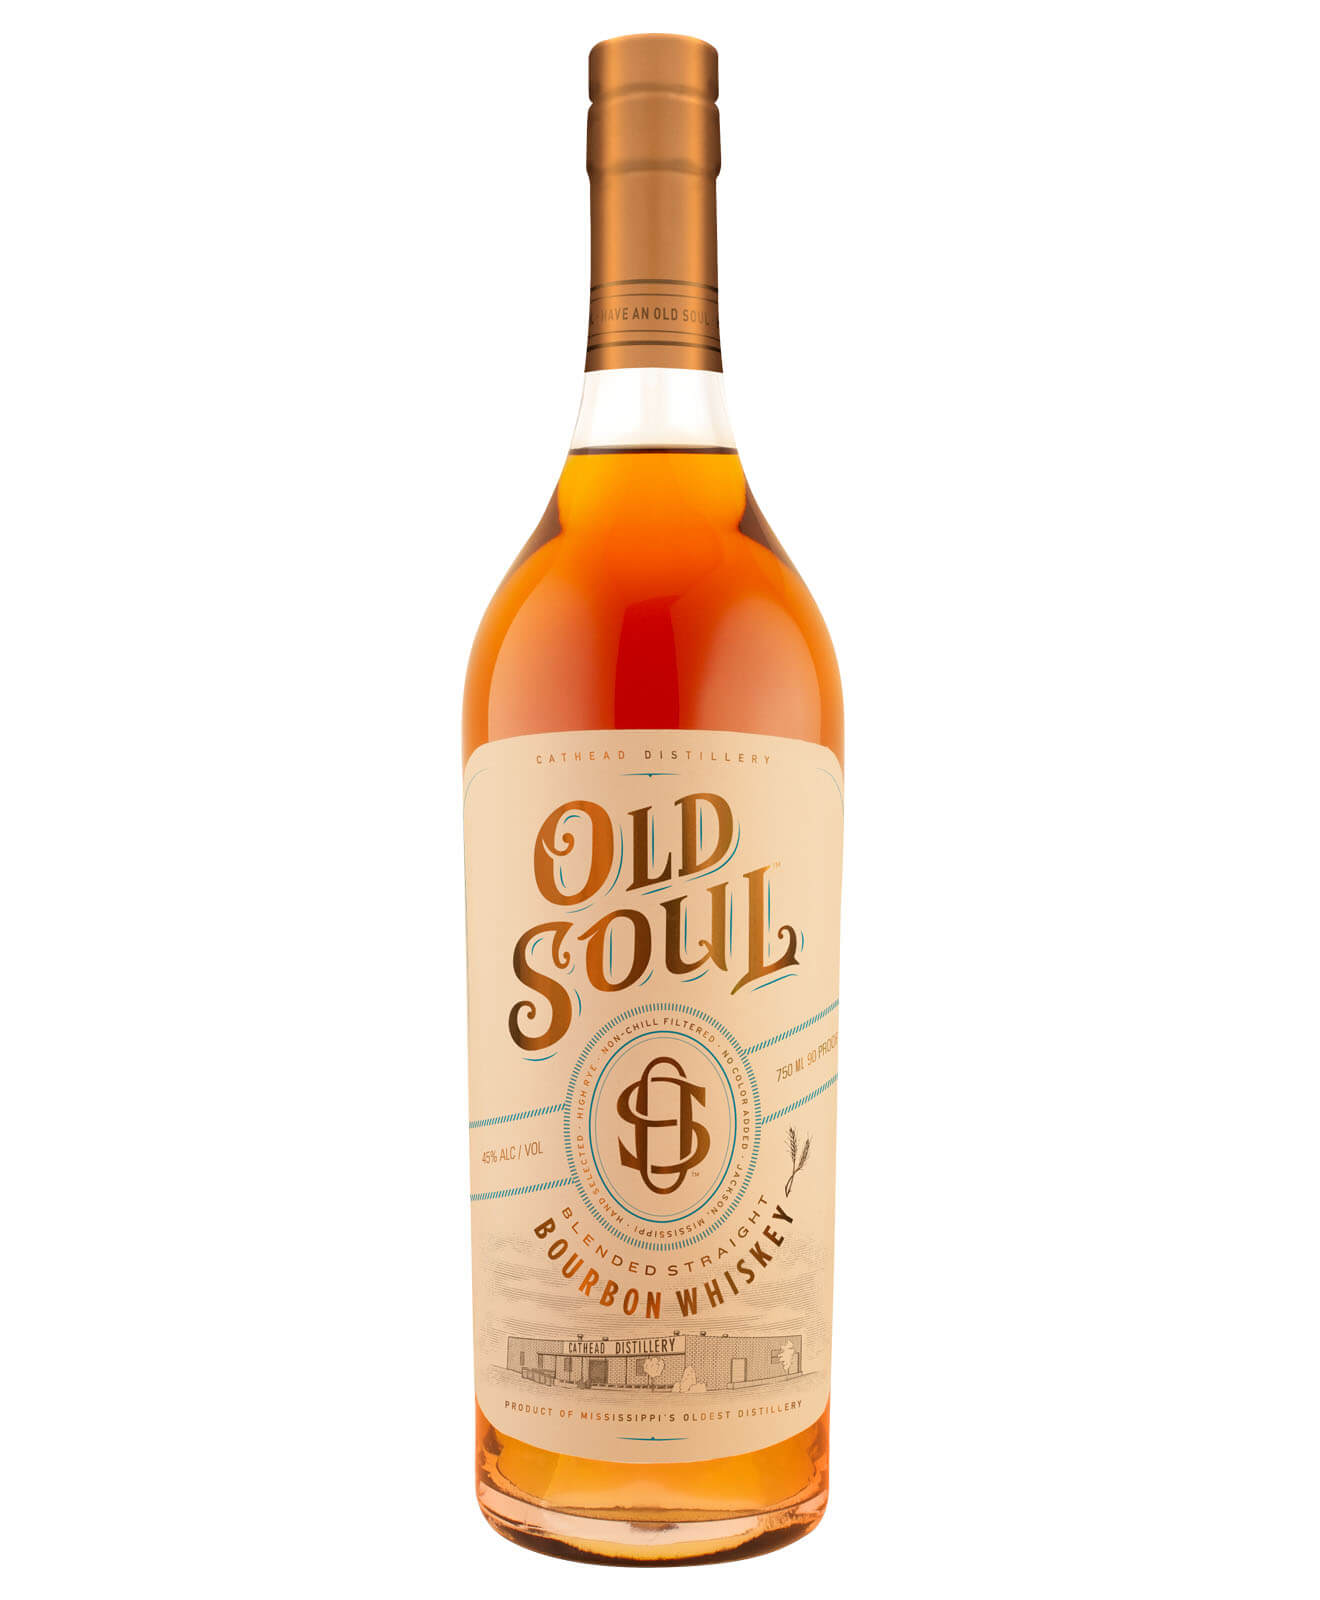 Cathead Old Soul Bourbon Whiskey, bottle on white